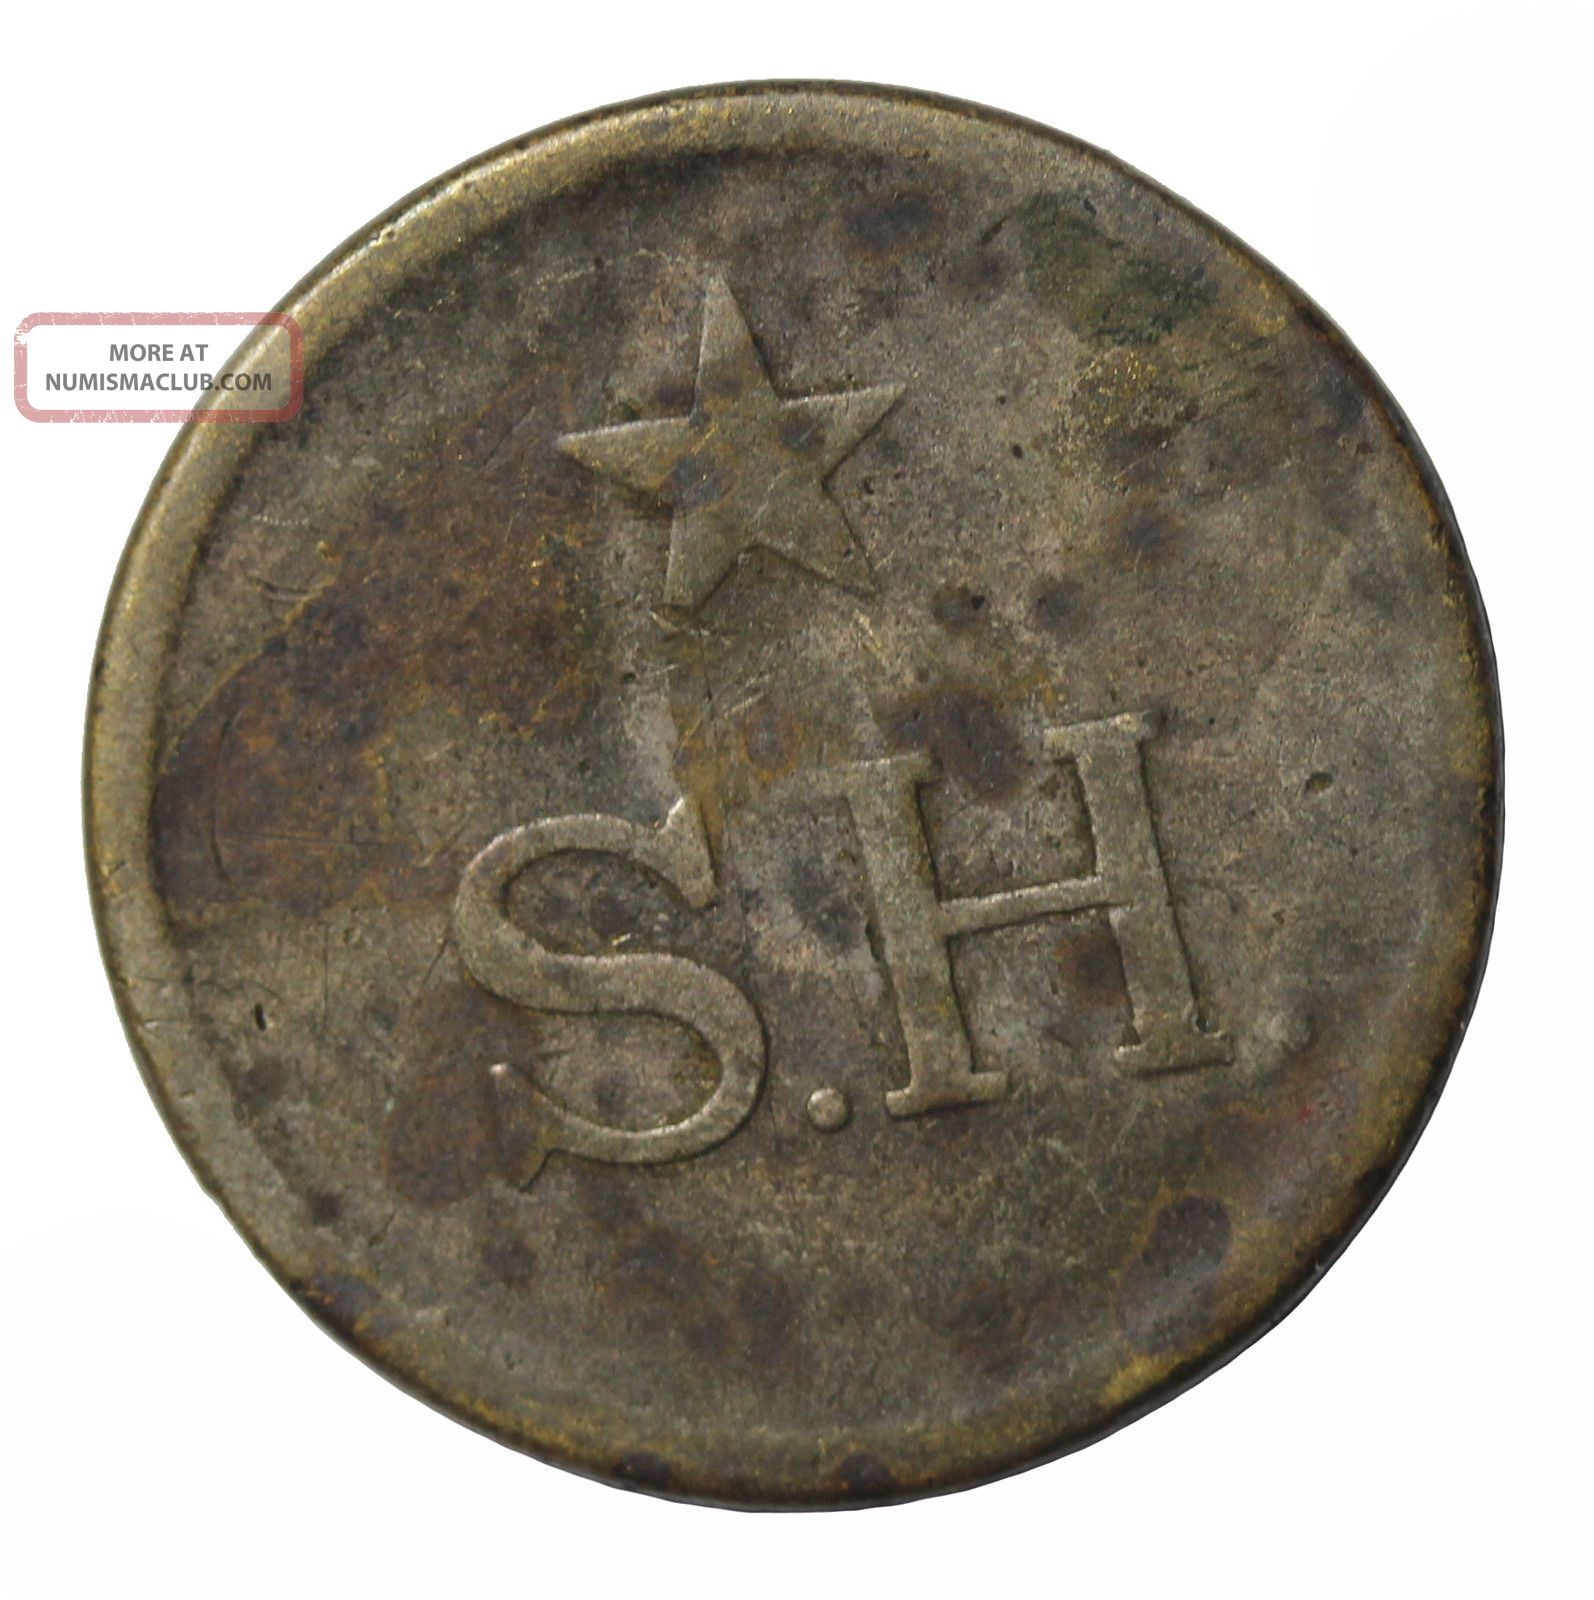 Scarce Colombia S.  H.  Mitad Token Brass Rulau Mit - 18 - 19 Exonumia photo